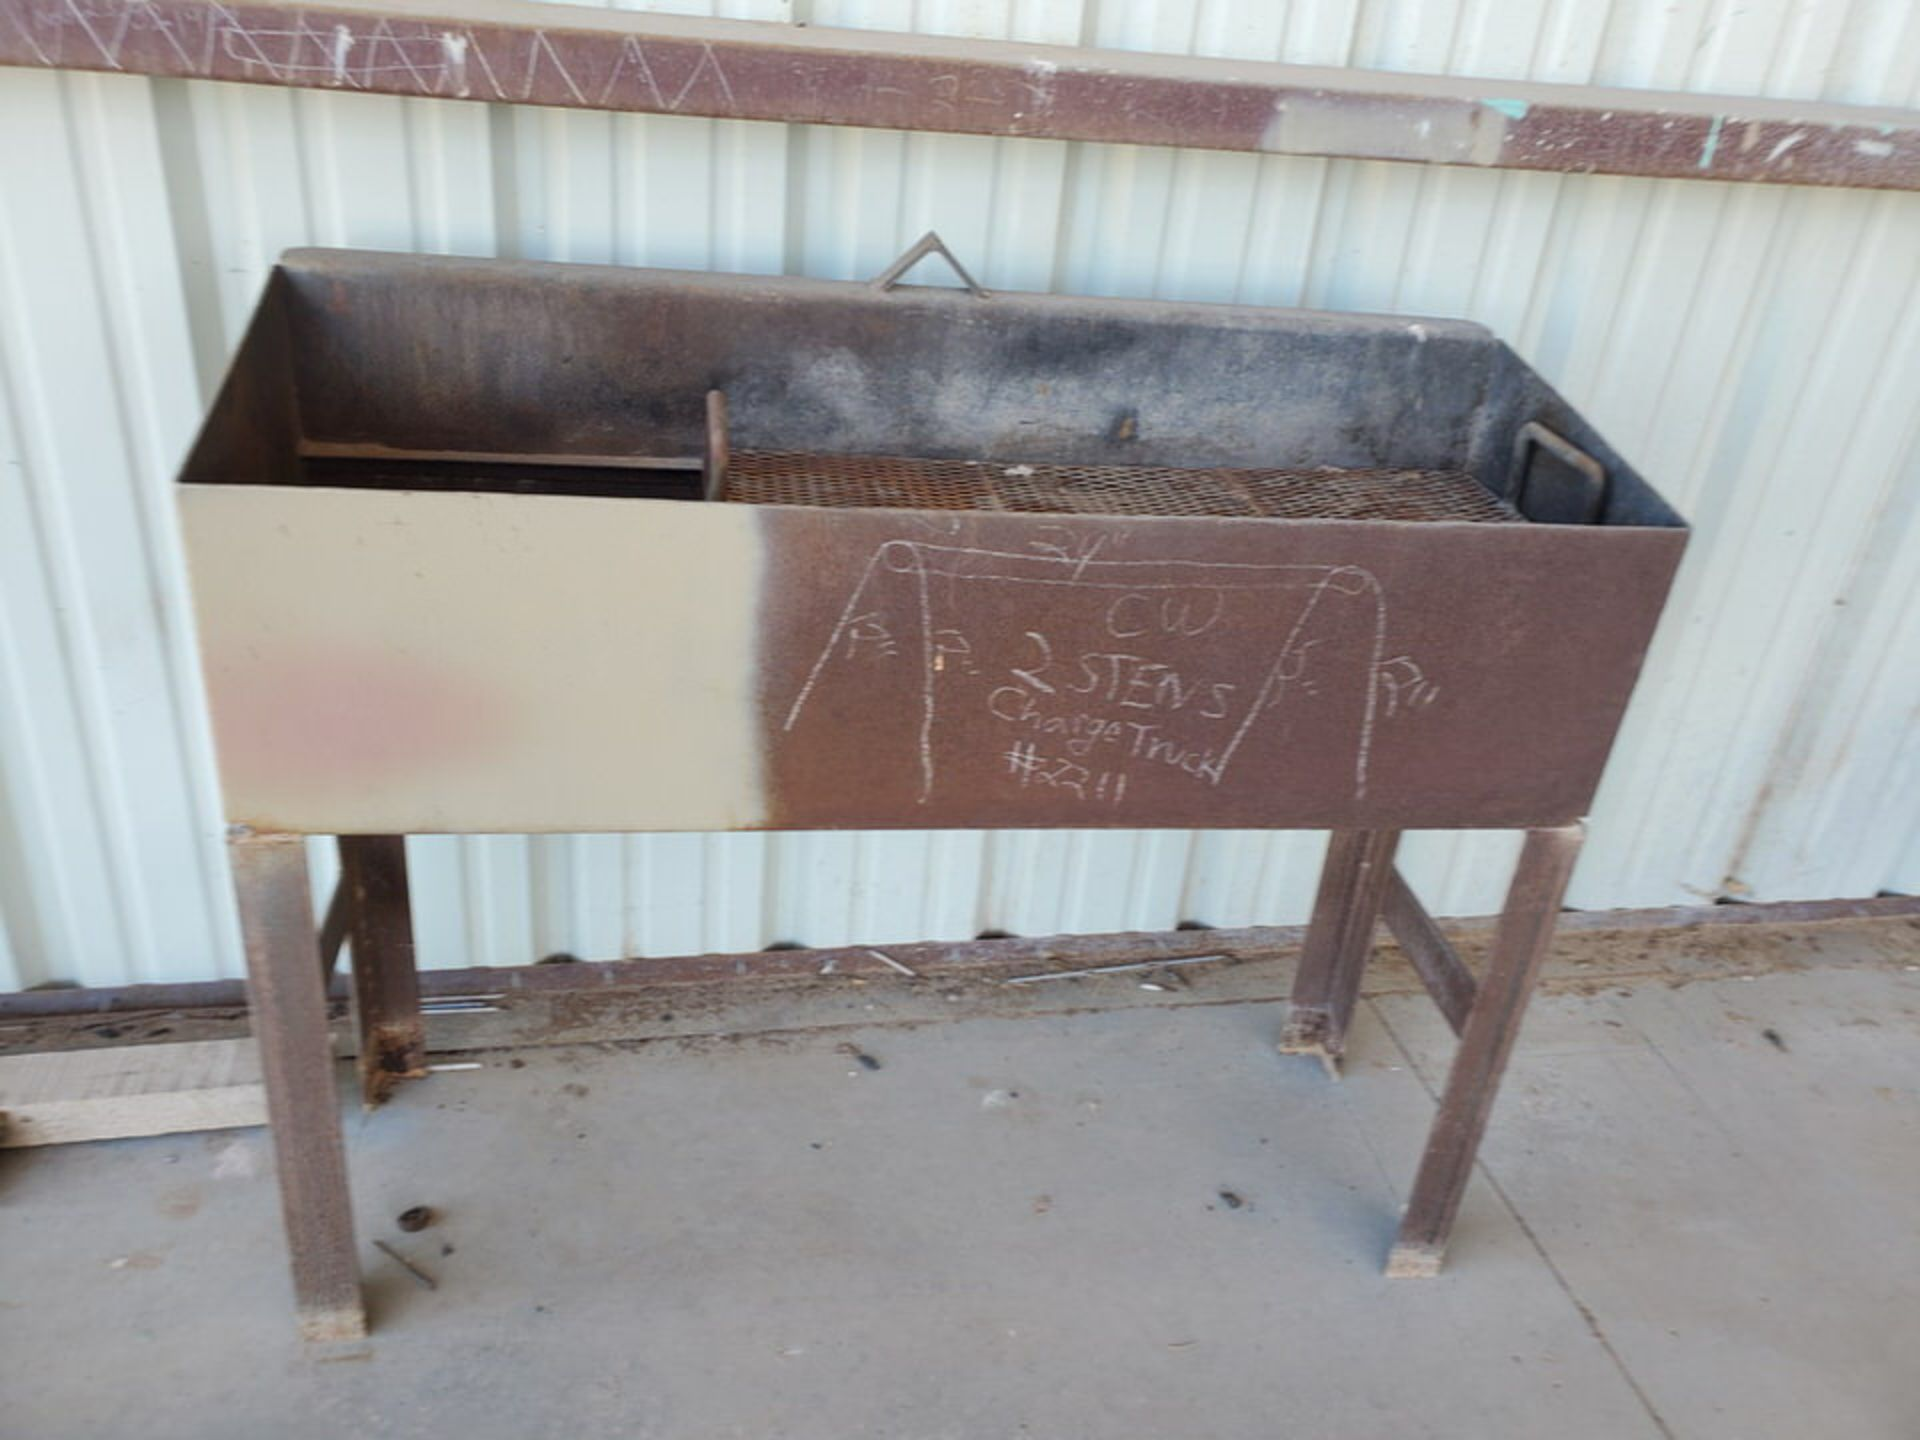 "Misc. Matl. To Include But Not Limited To: 42"" Drum Fan, Saw Horses, Welding Table, etc. - Image 10 of 10"